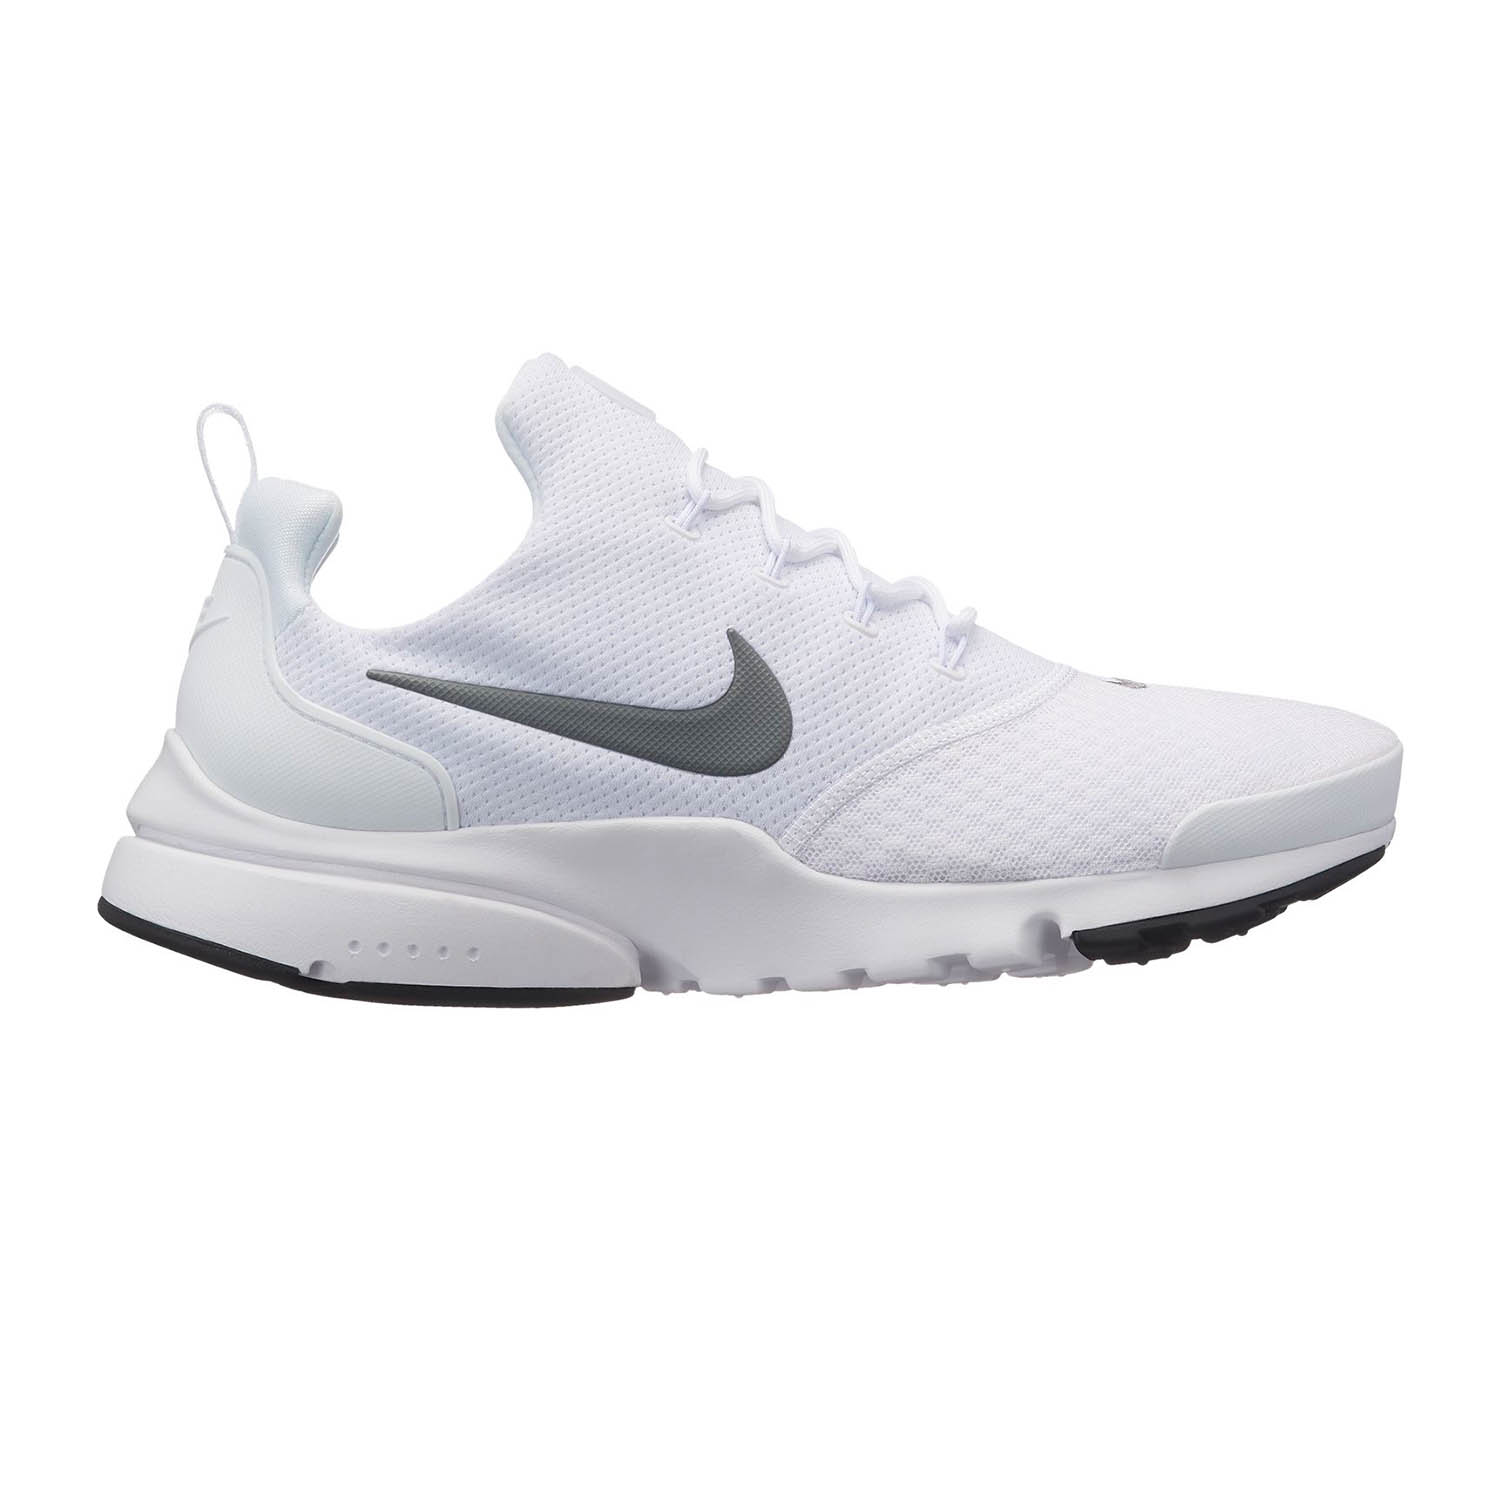 23a3f2c46 coupon code for nike air max thea oatmeal sail white oxide fcac0 c565e